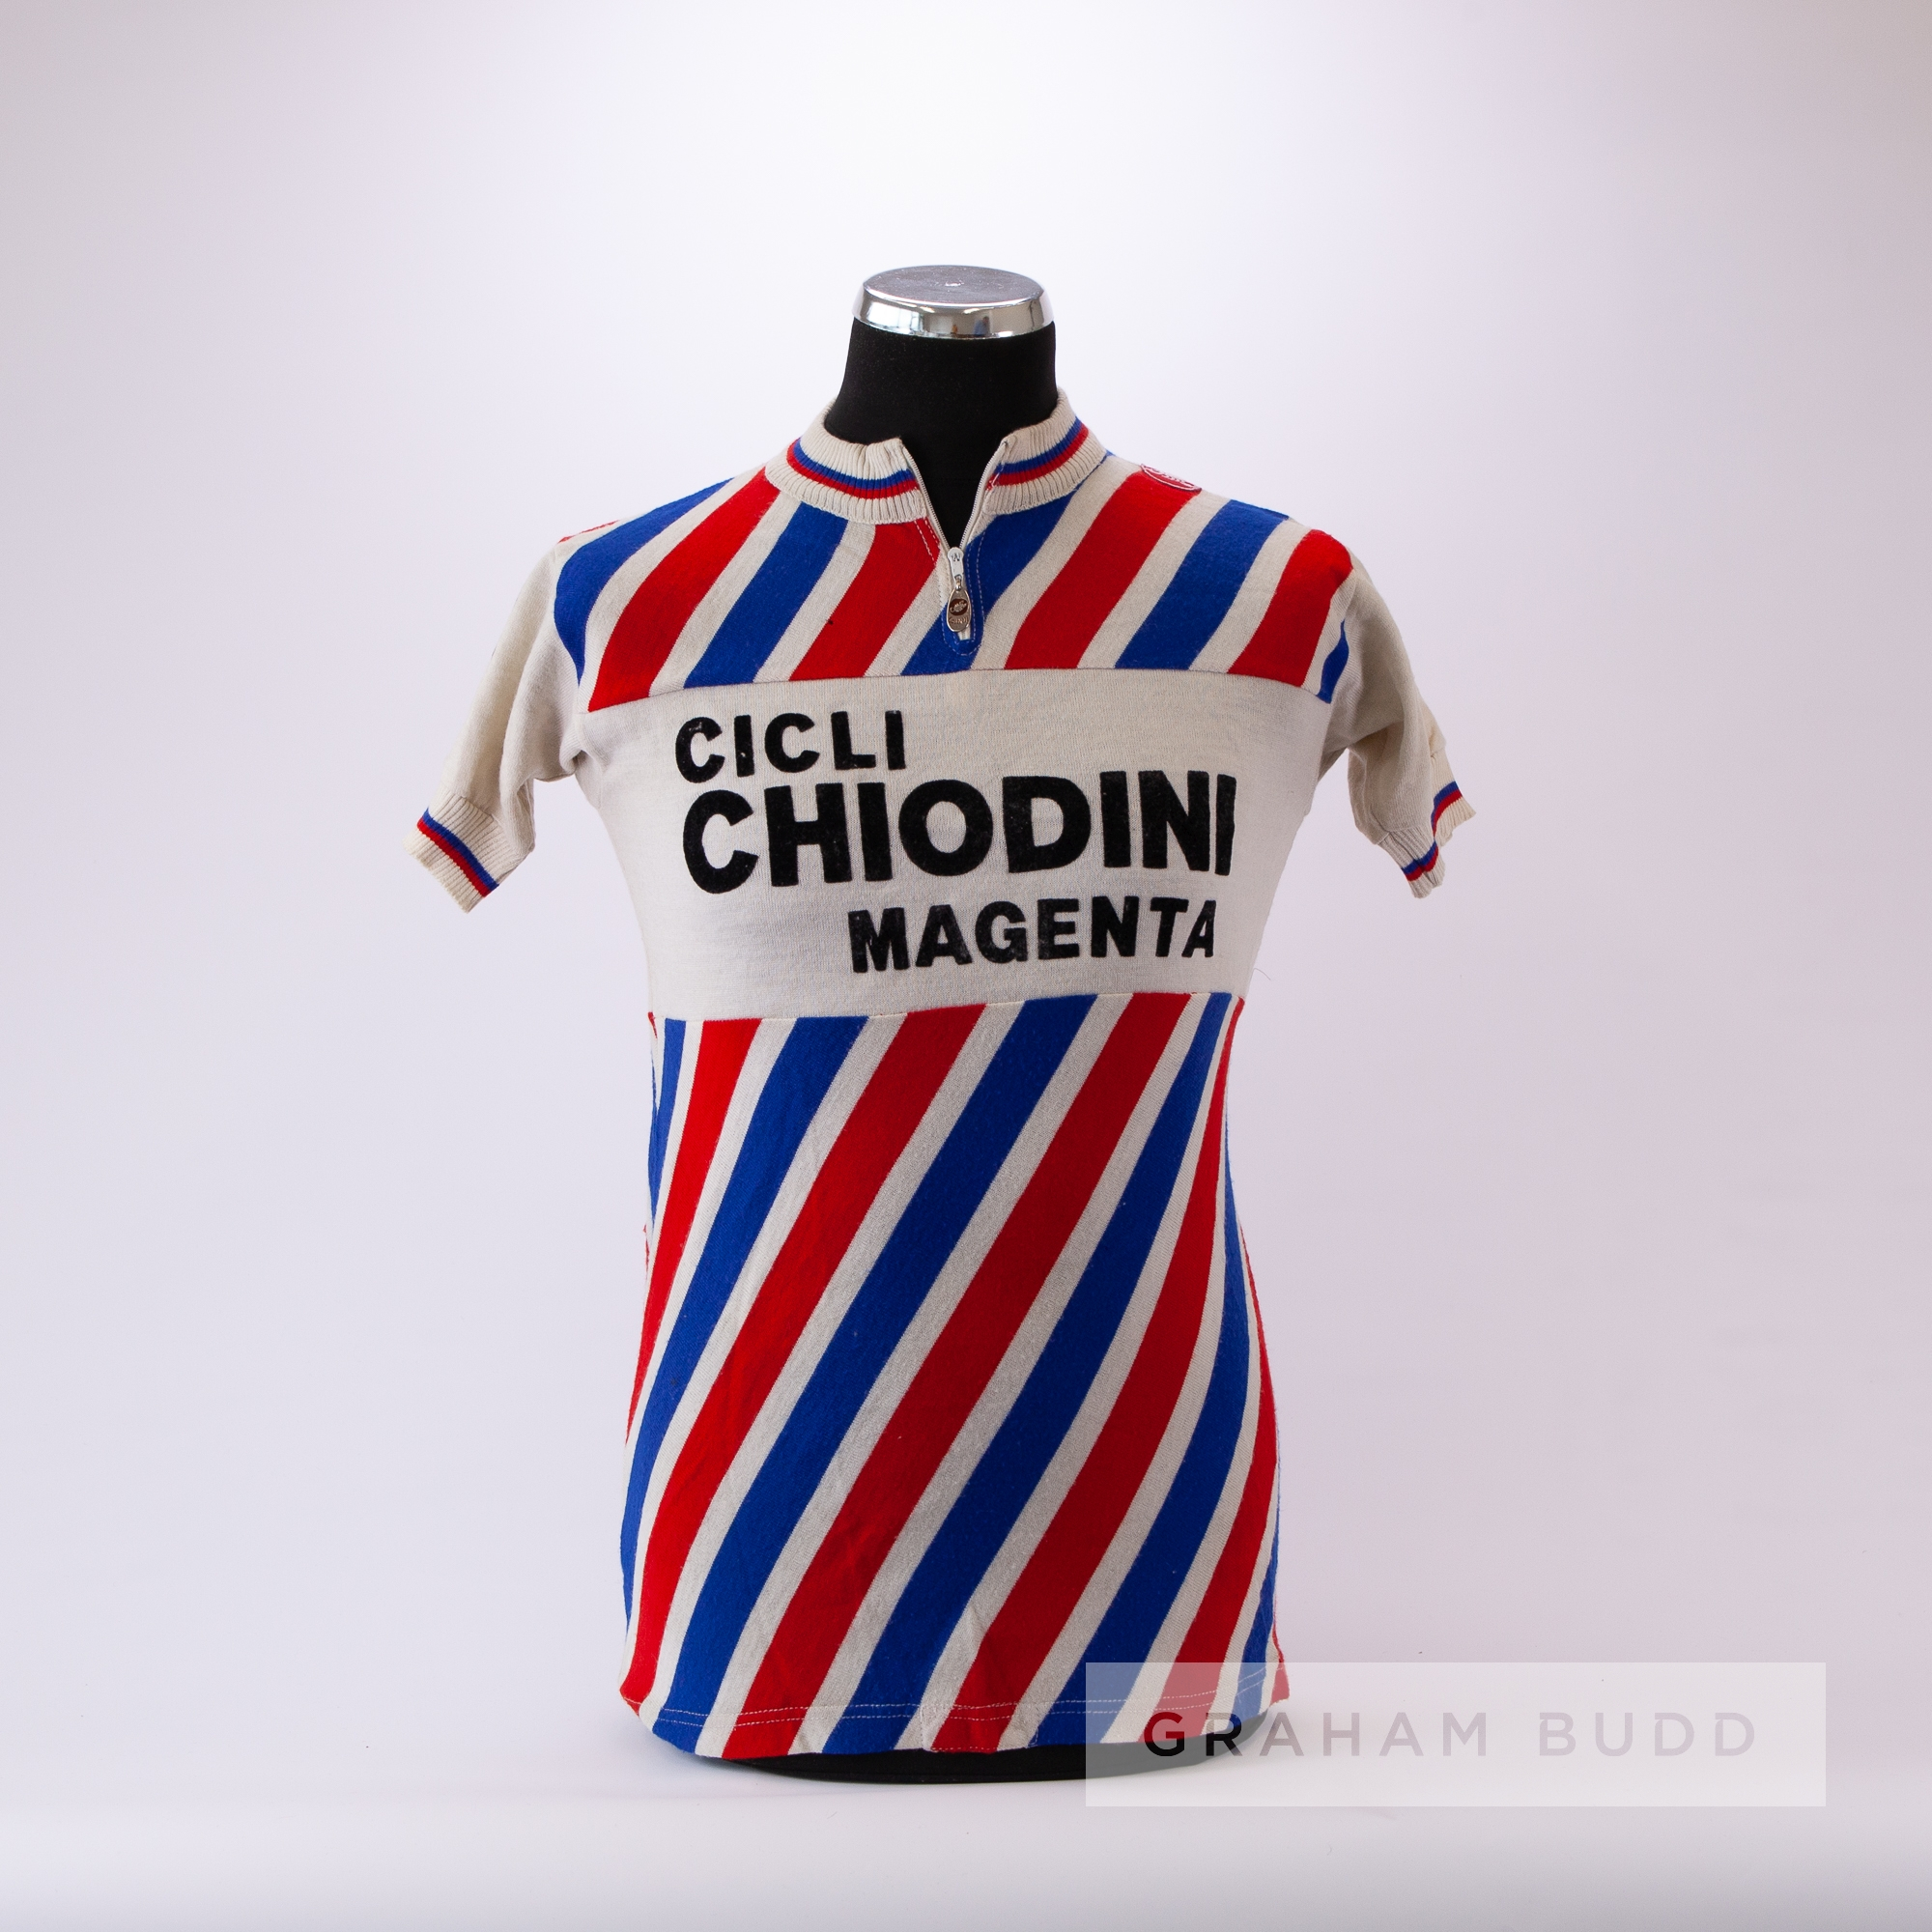 1975 white, red and blue vintage Italian Castelli Cycling race jersey, scarce, wool and acrylic - Image 3 of 4